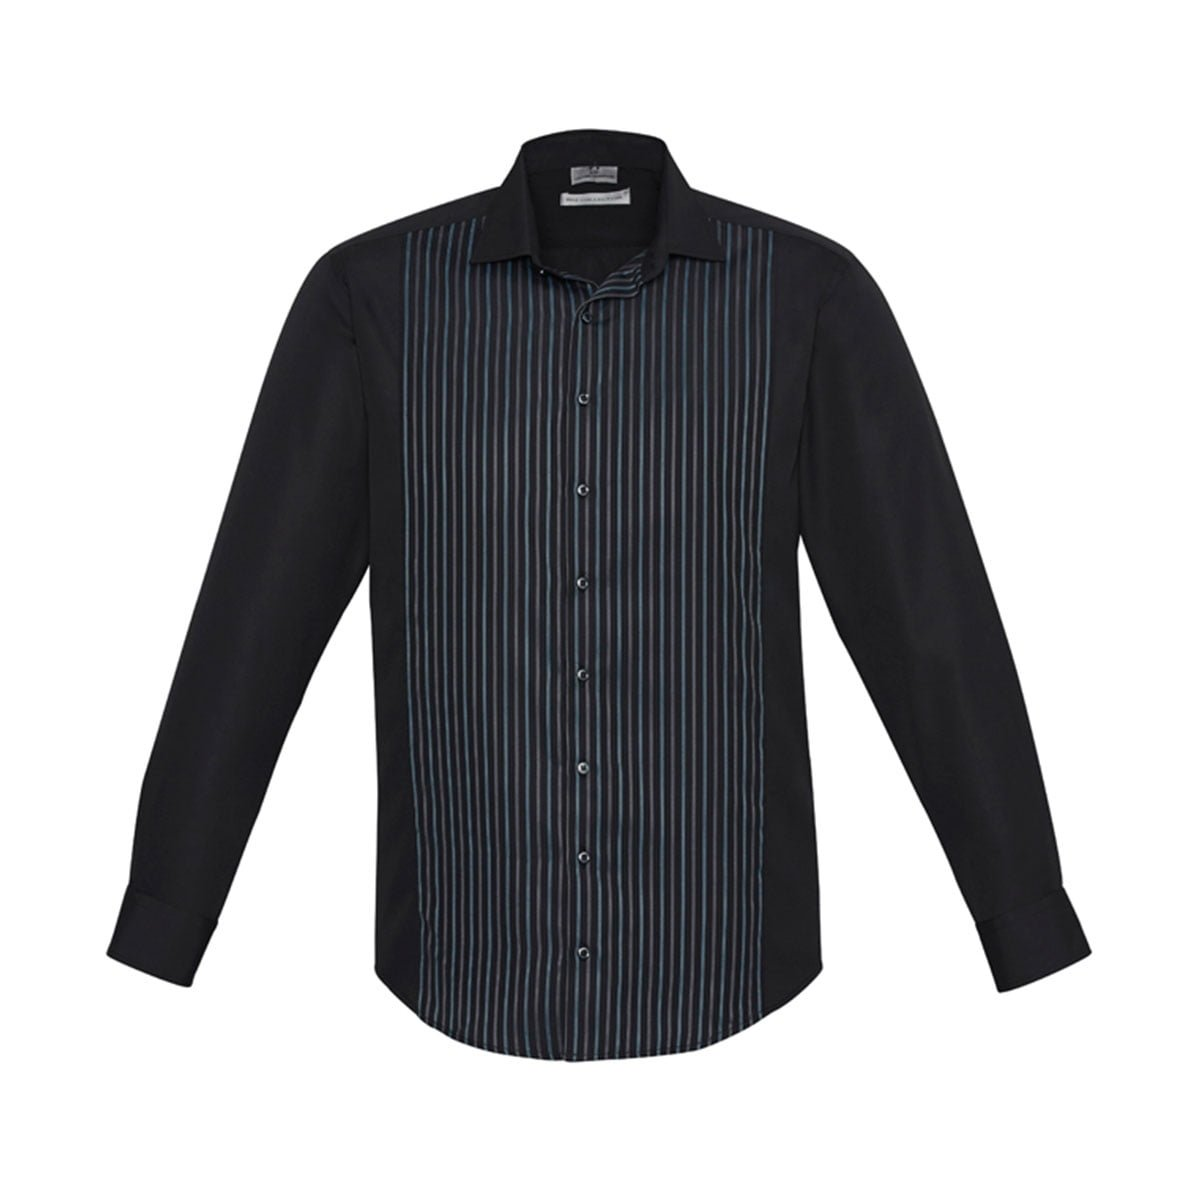 Mens Reno Panel Long Sleeve Shirt-Black / Teal Blue